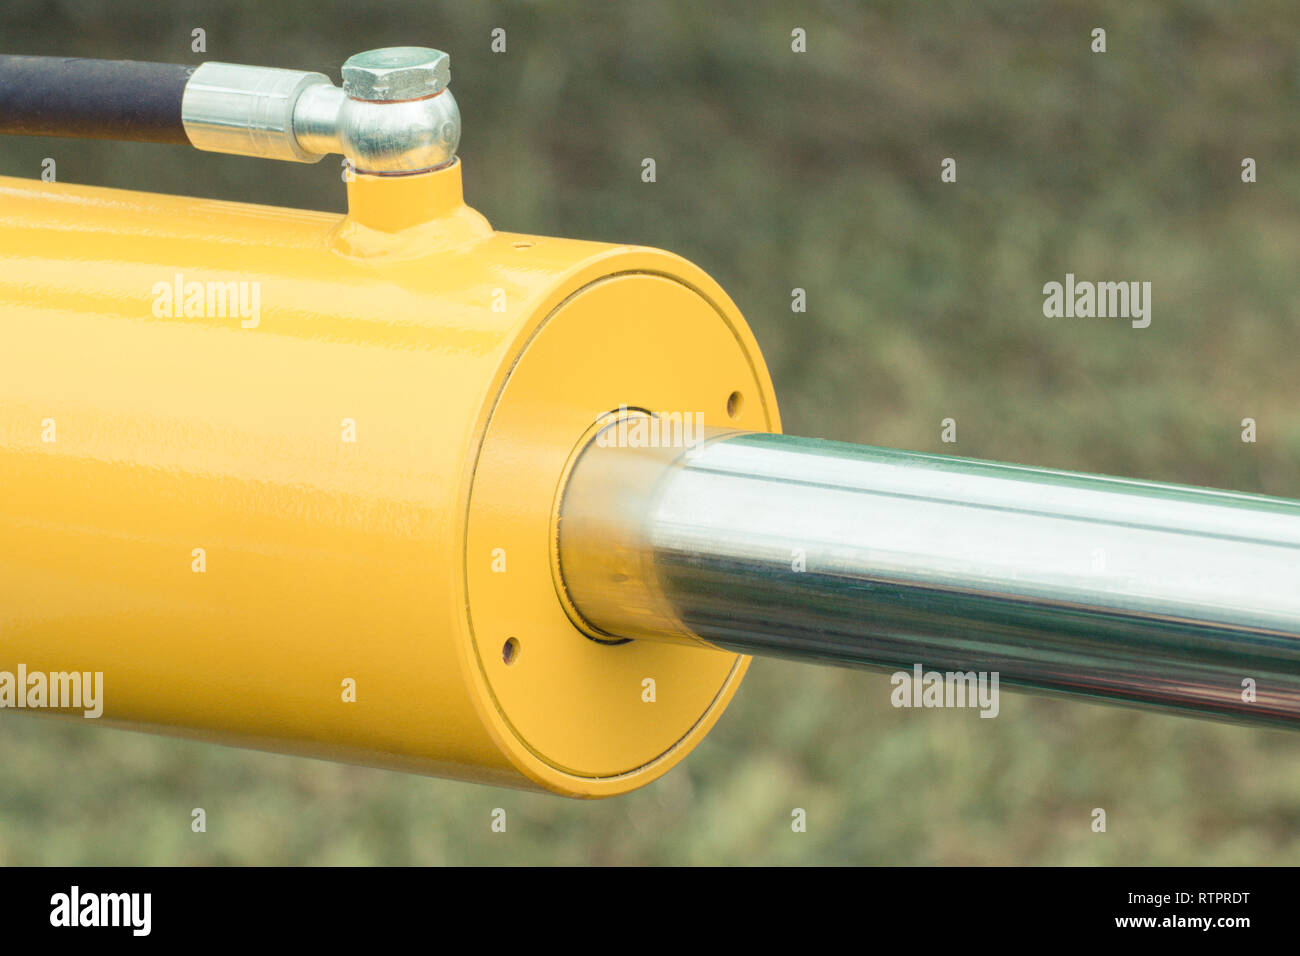 Detail and part of industrial hydraulic or pneumatic